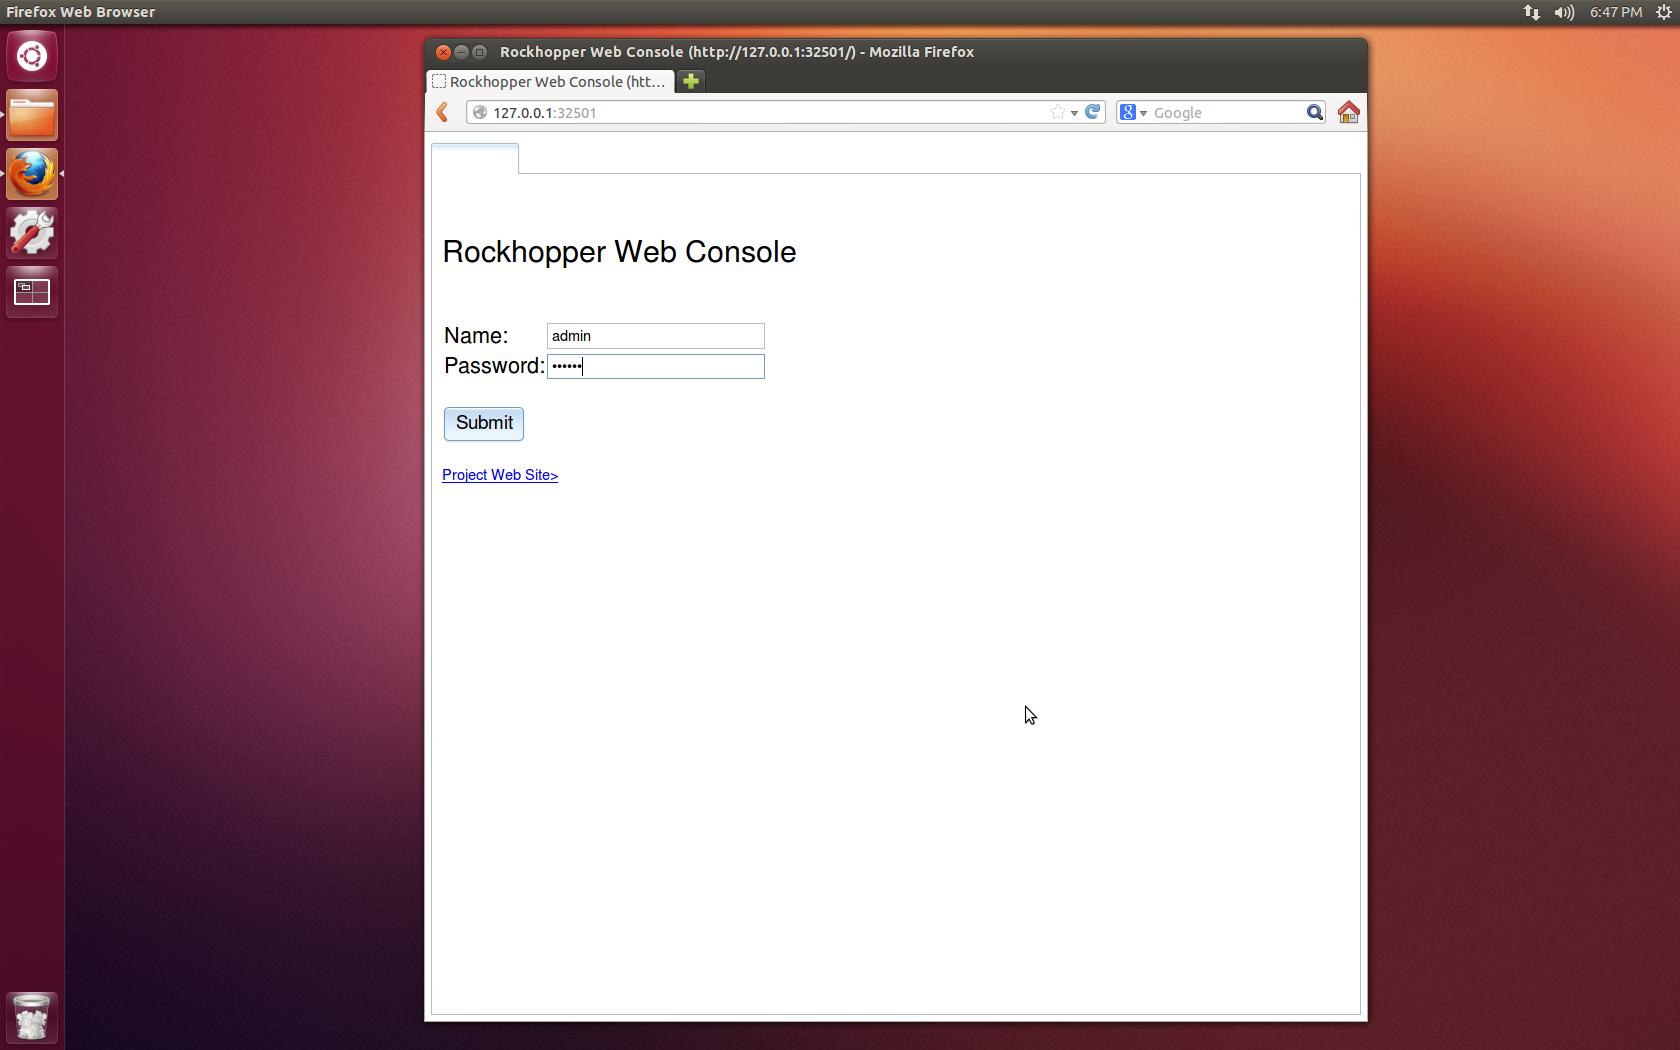 Web Console's Login Page